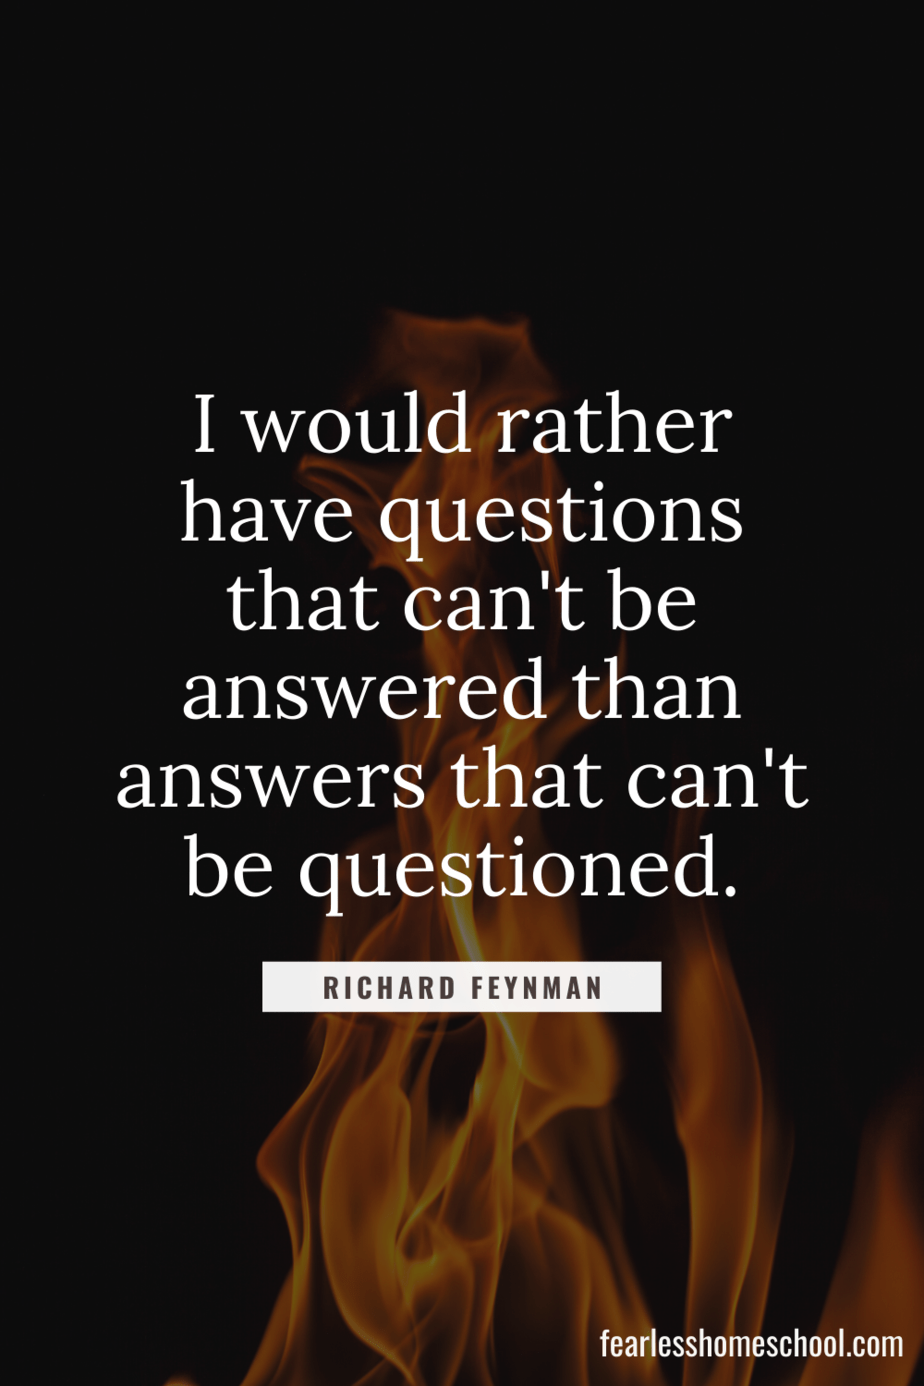 I would rather have questions that can't be answered than answers that can't be questioned. Richard Feynman homeschooling quote